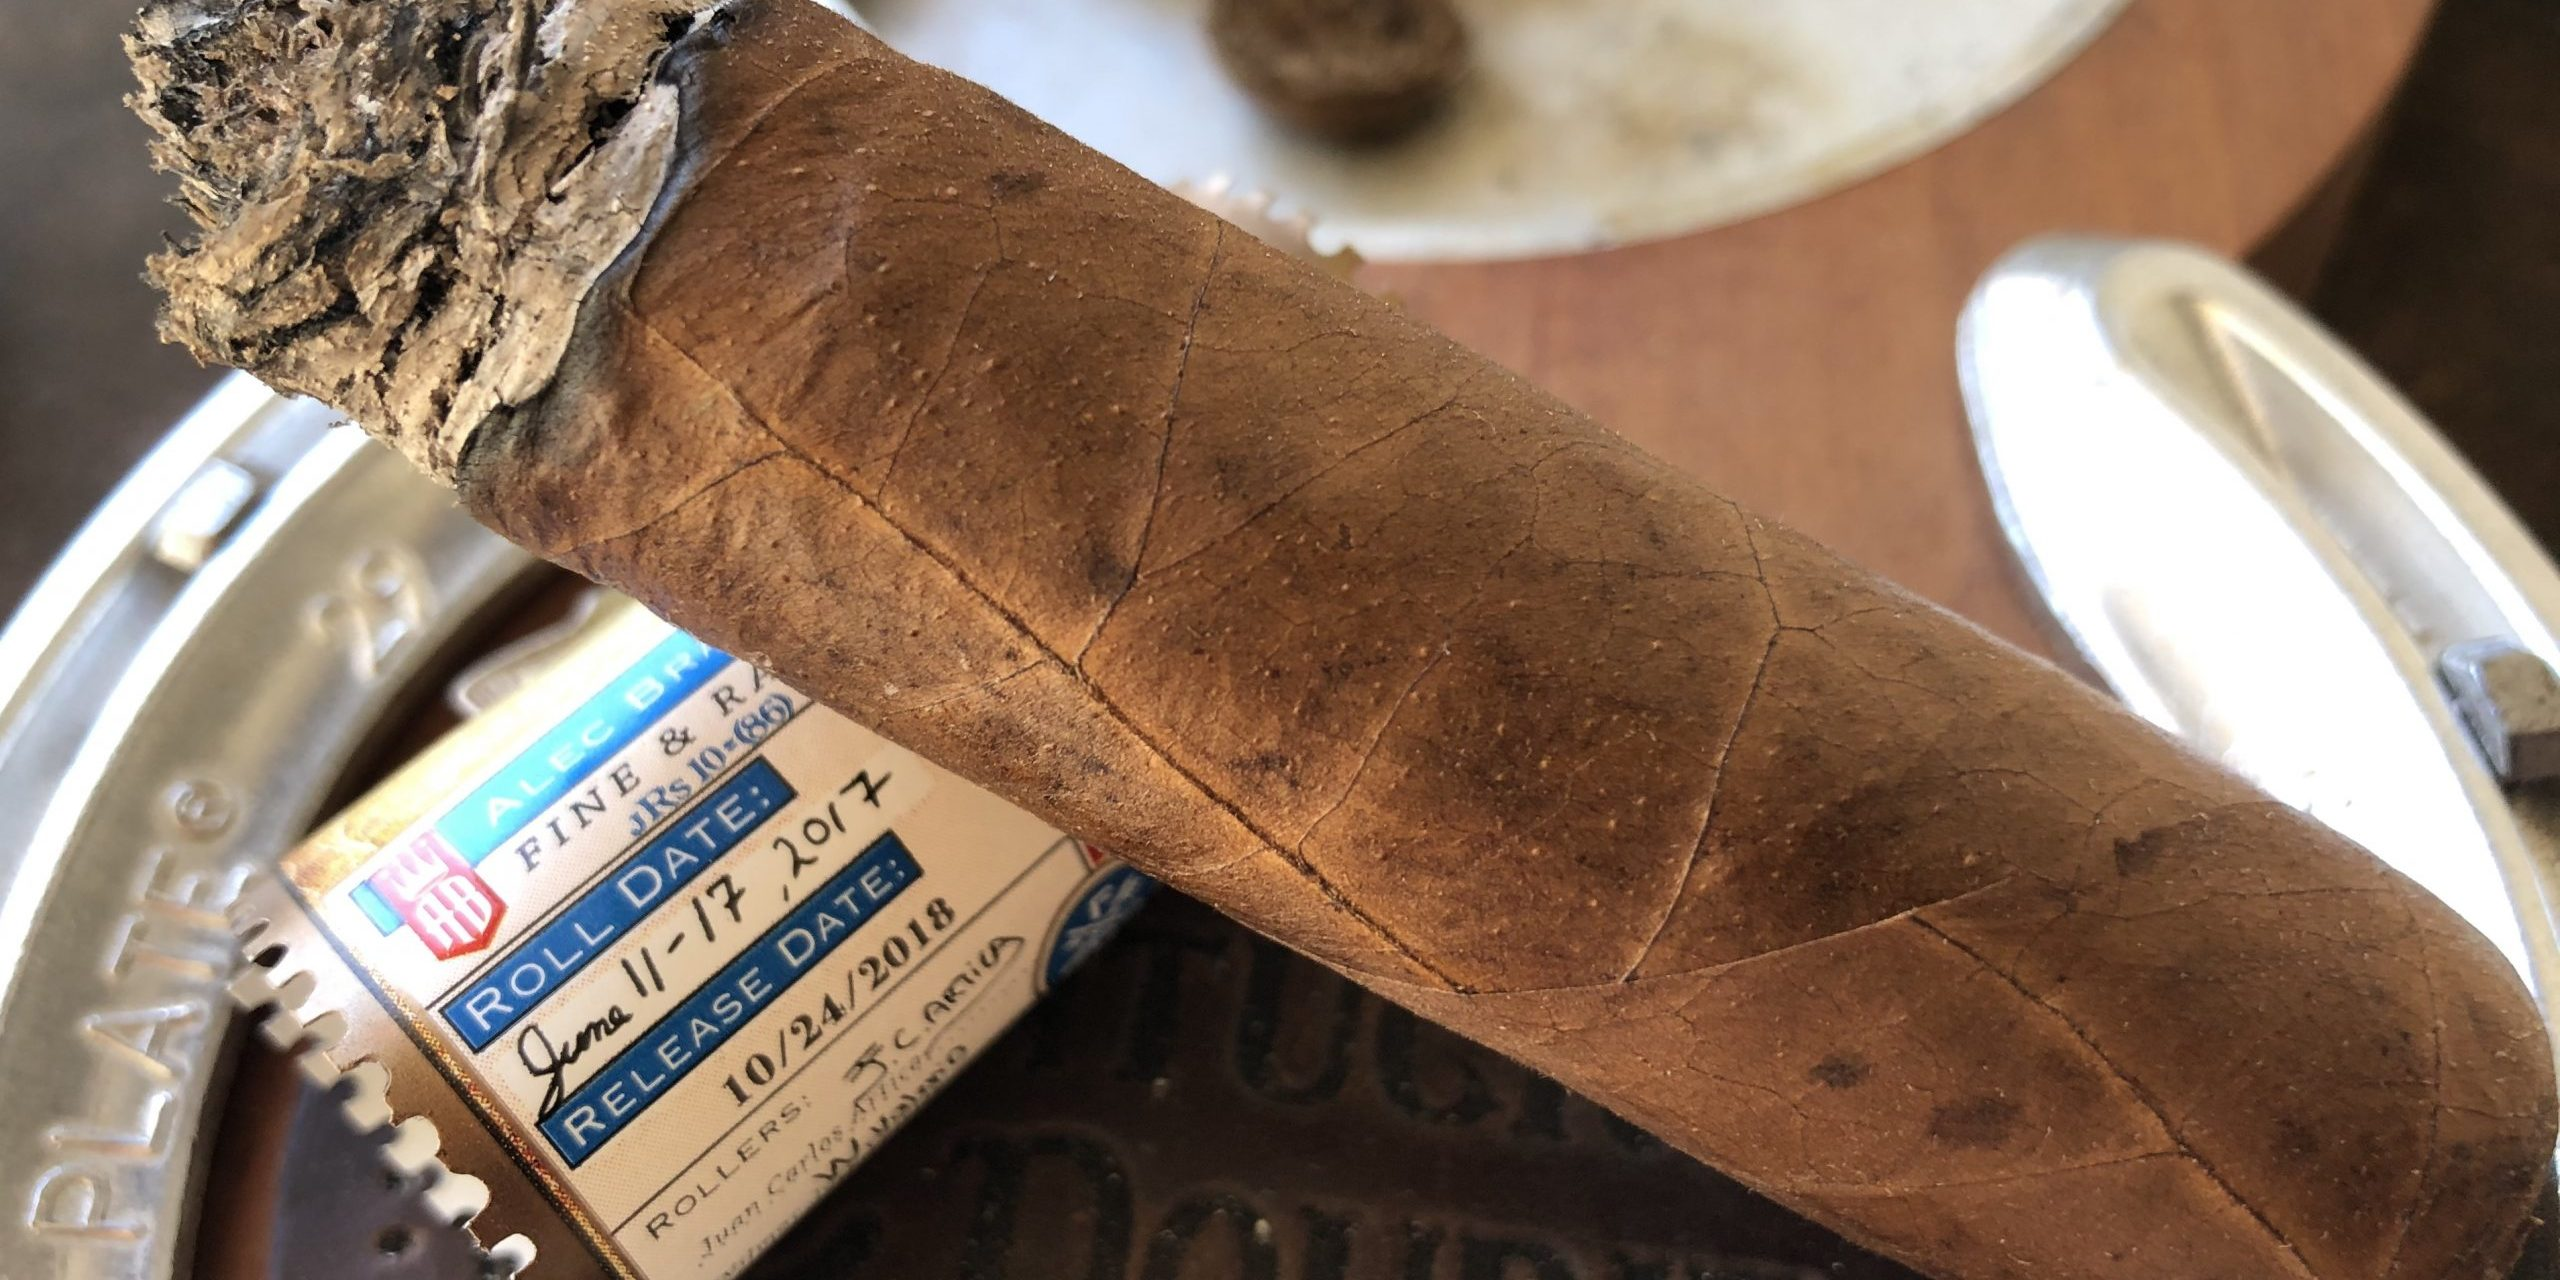 You are currently viewing Alec Bradley Fine & Rare 2018 Gran Toro Cigar Review